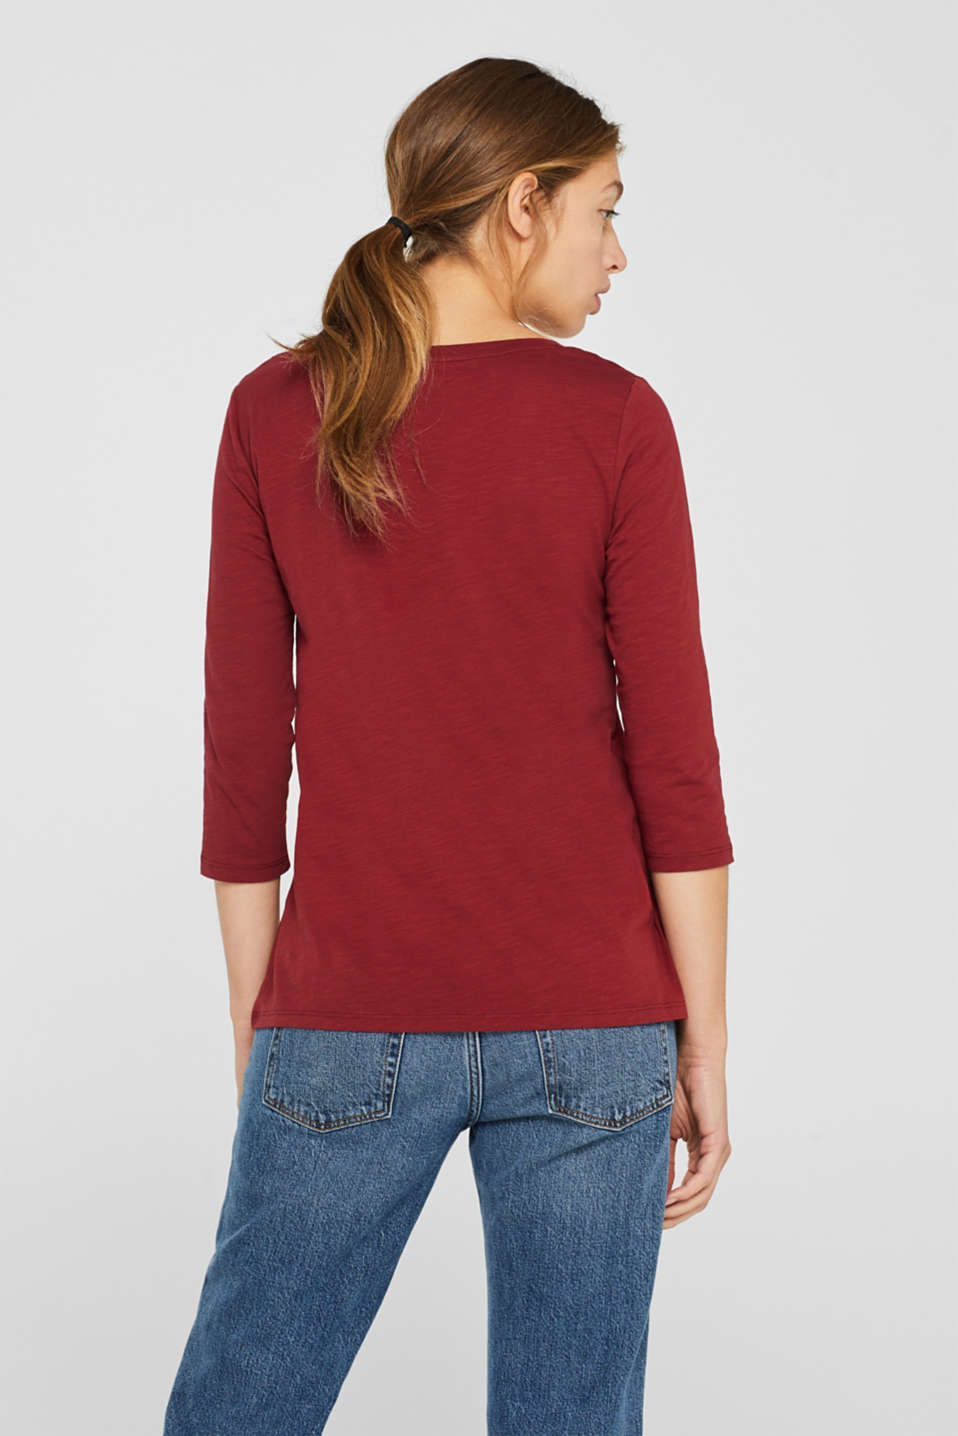 Long sleeve top with a large neckline, 100% cotton, GARNET RED 5, detail image number 3